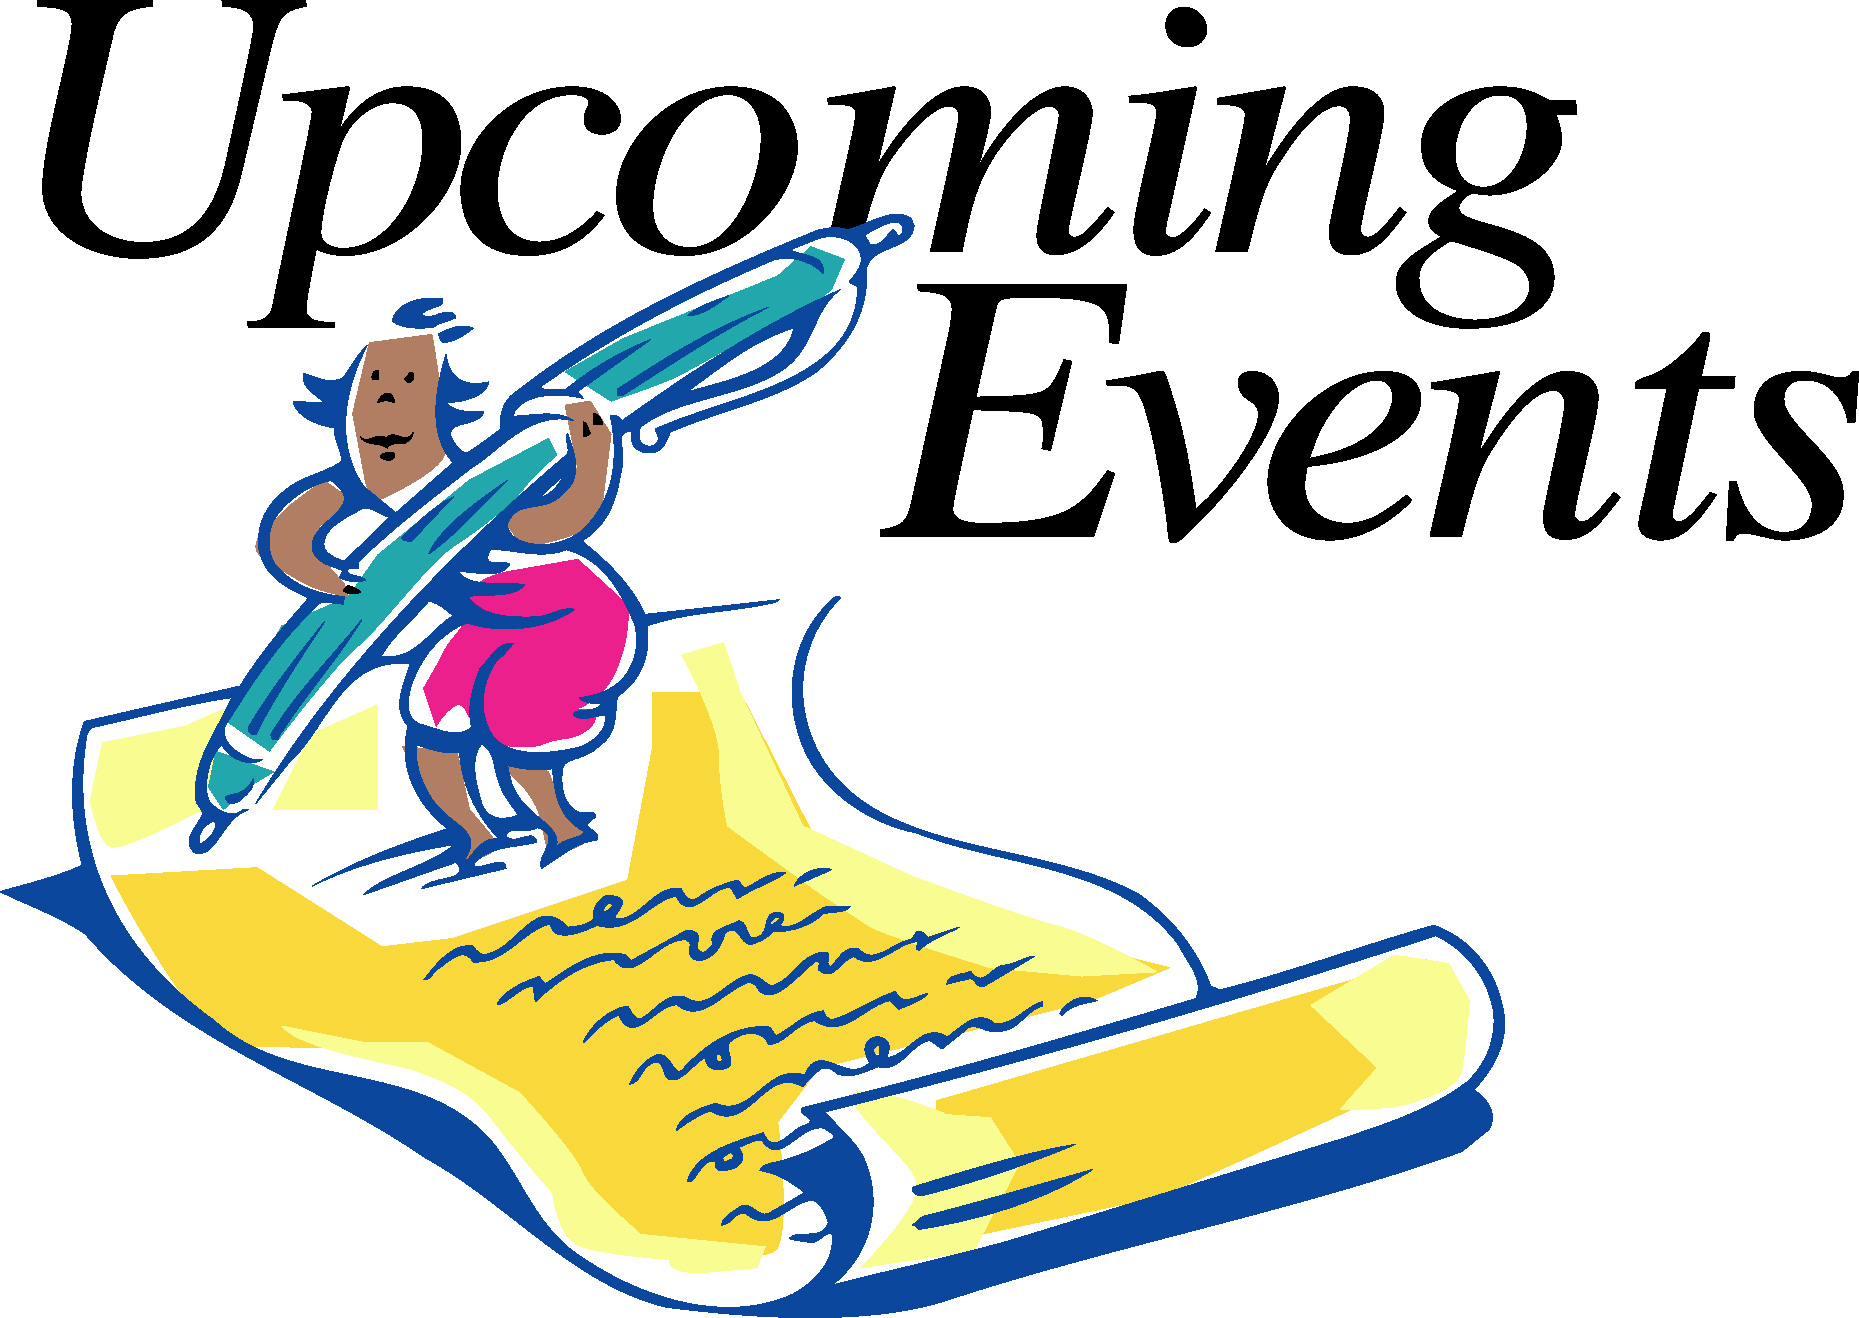 Churches Upcoming Events Clipart.